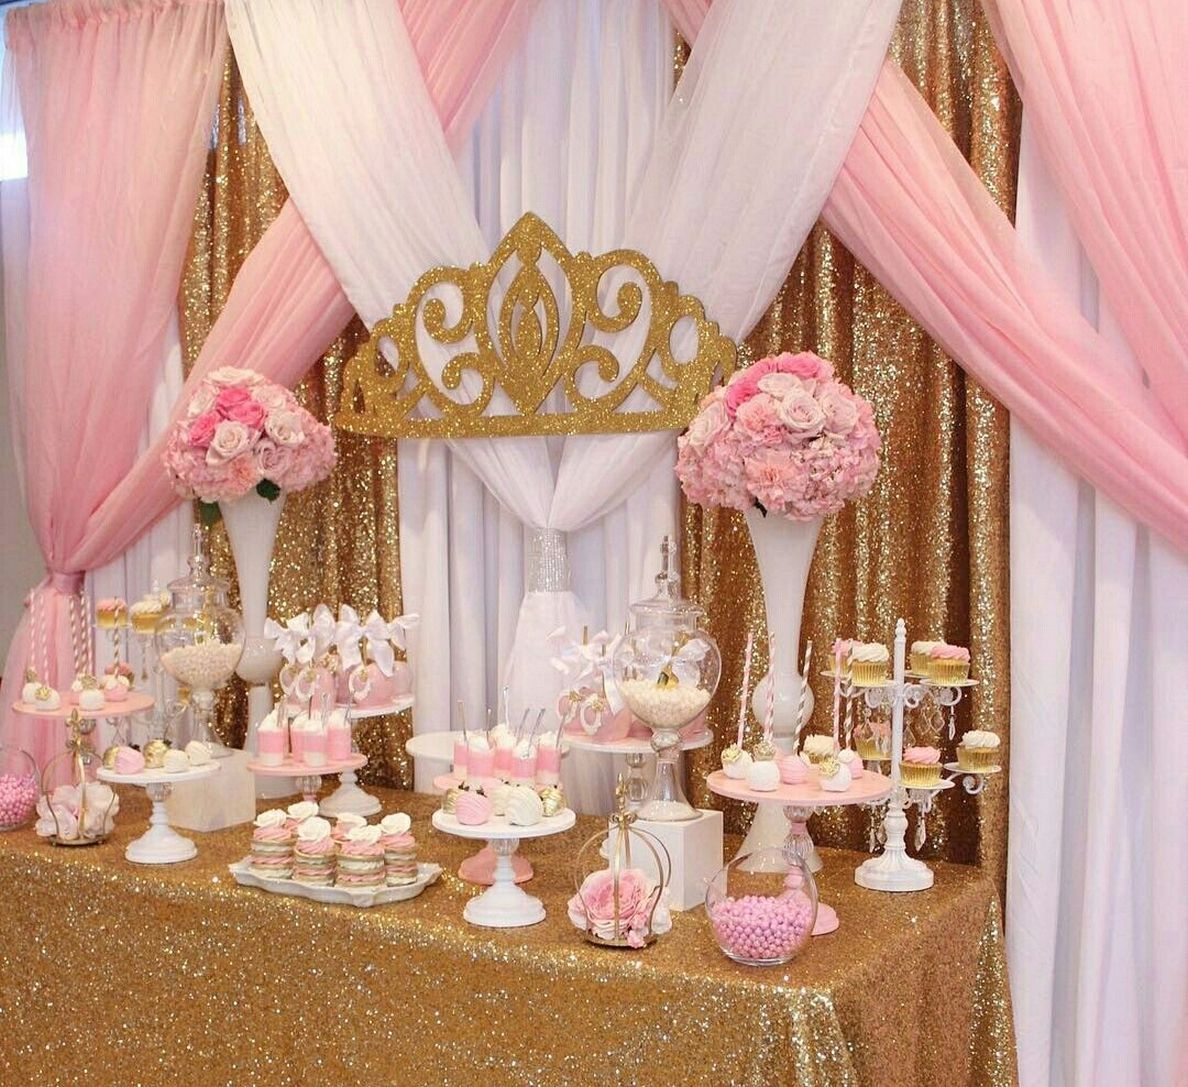 Best 100 Quince Decorations Ideas For Your Party This Month